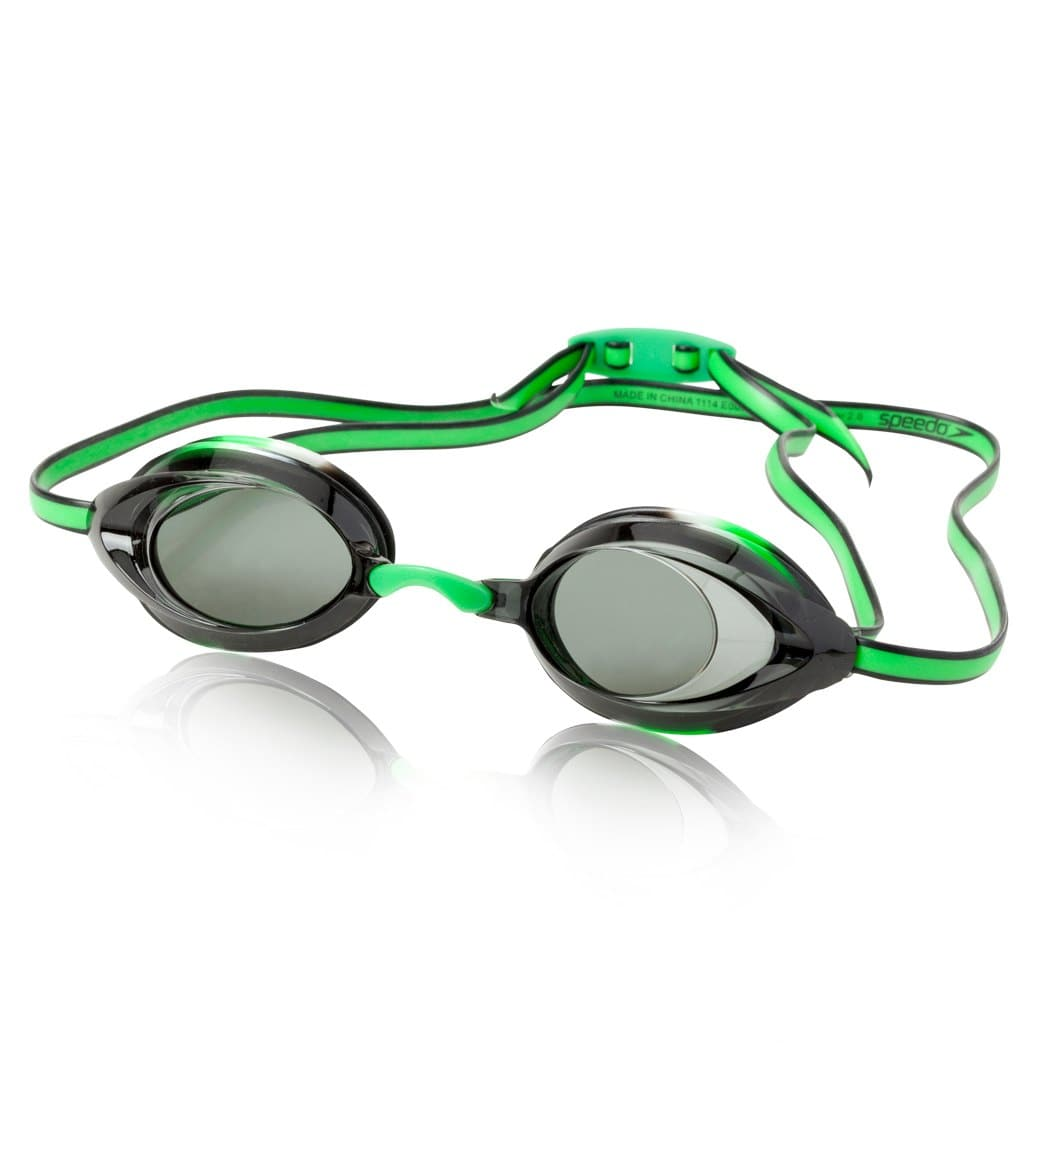 eed4a8ee6a3 Speedo Jr. Vanquisher 2.0 Goggle (Ages 8+)